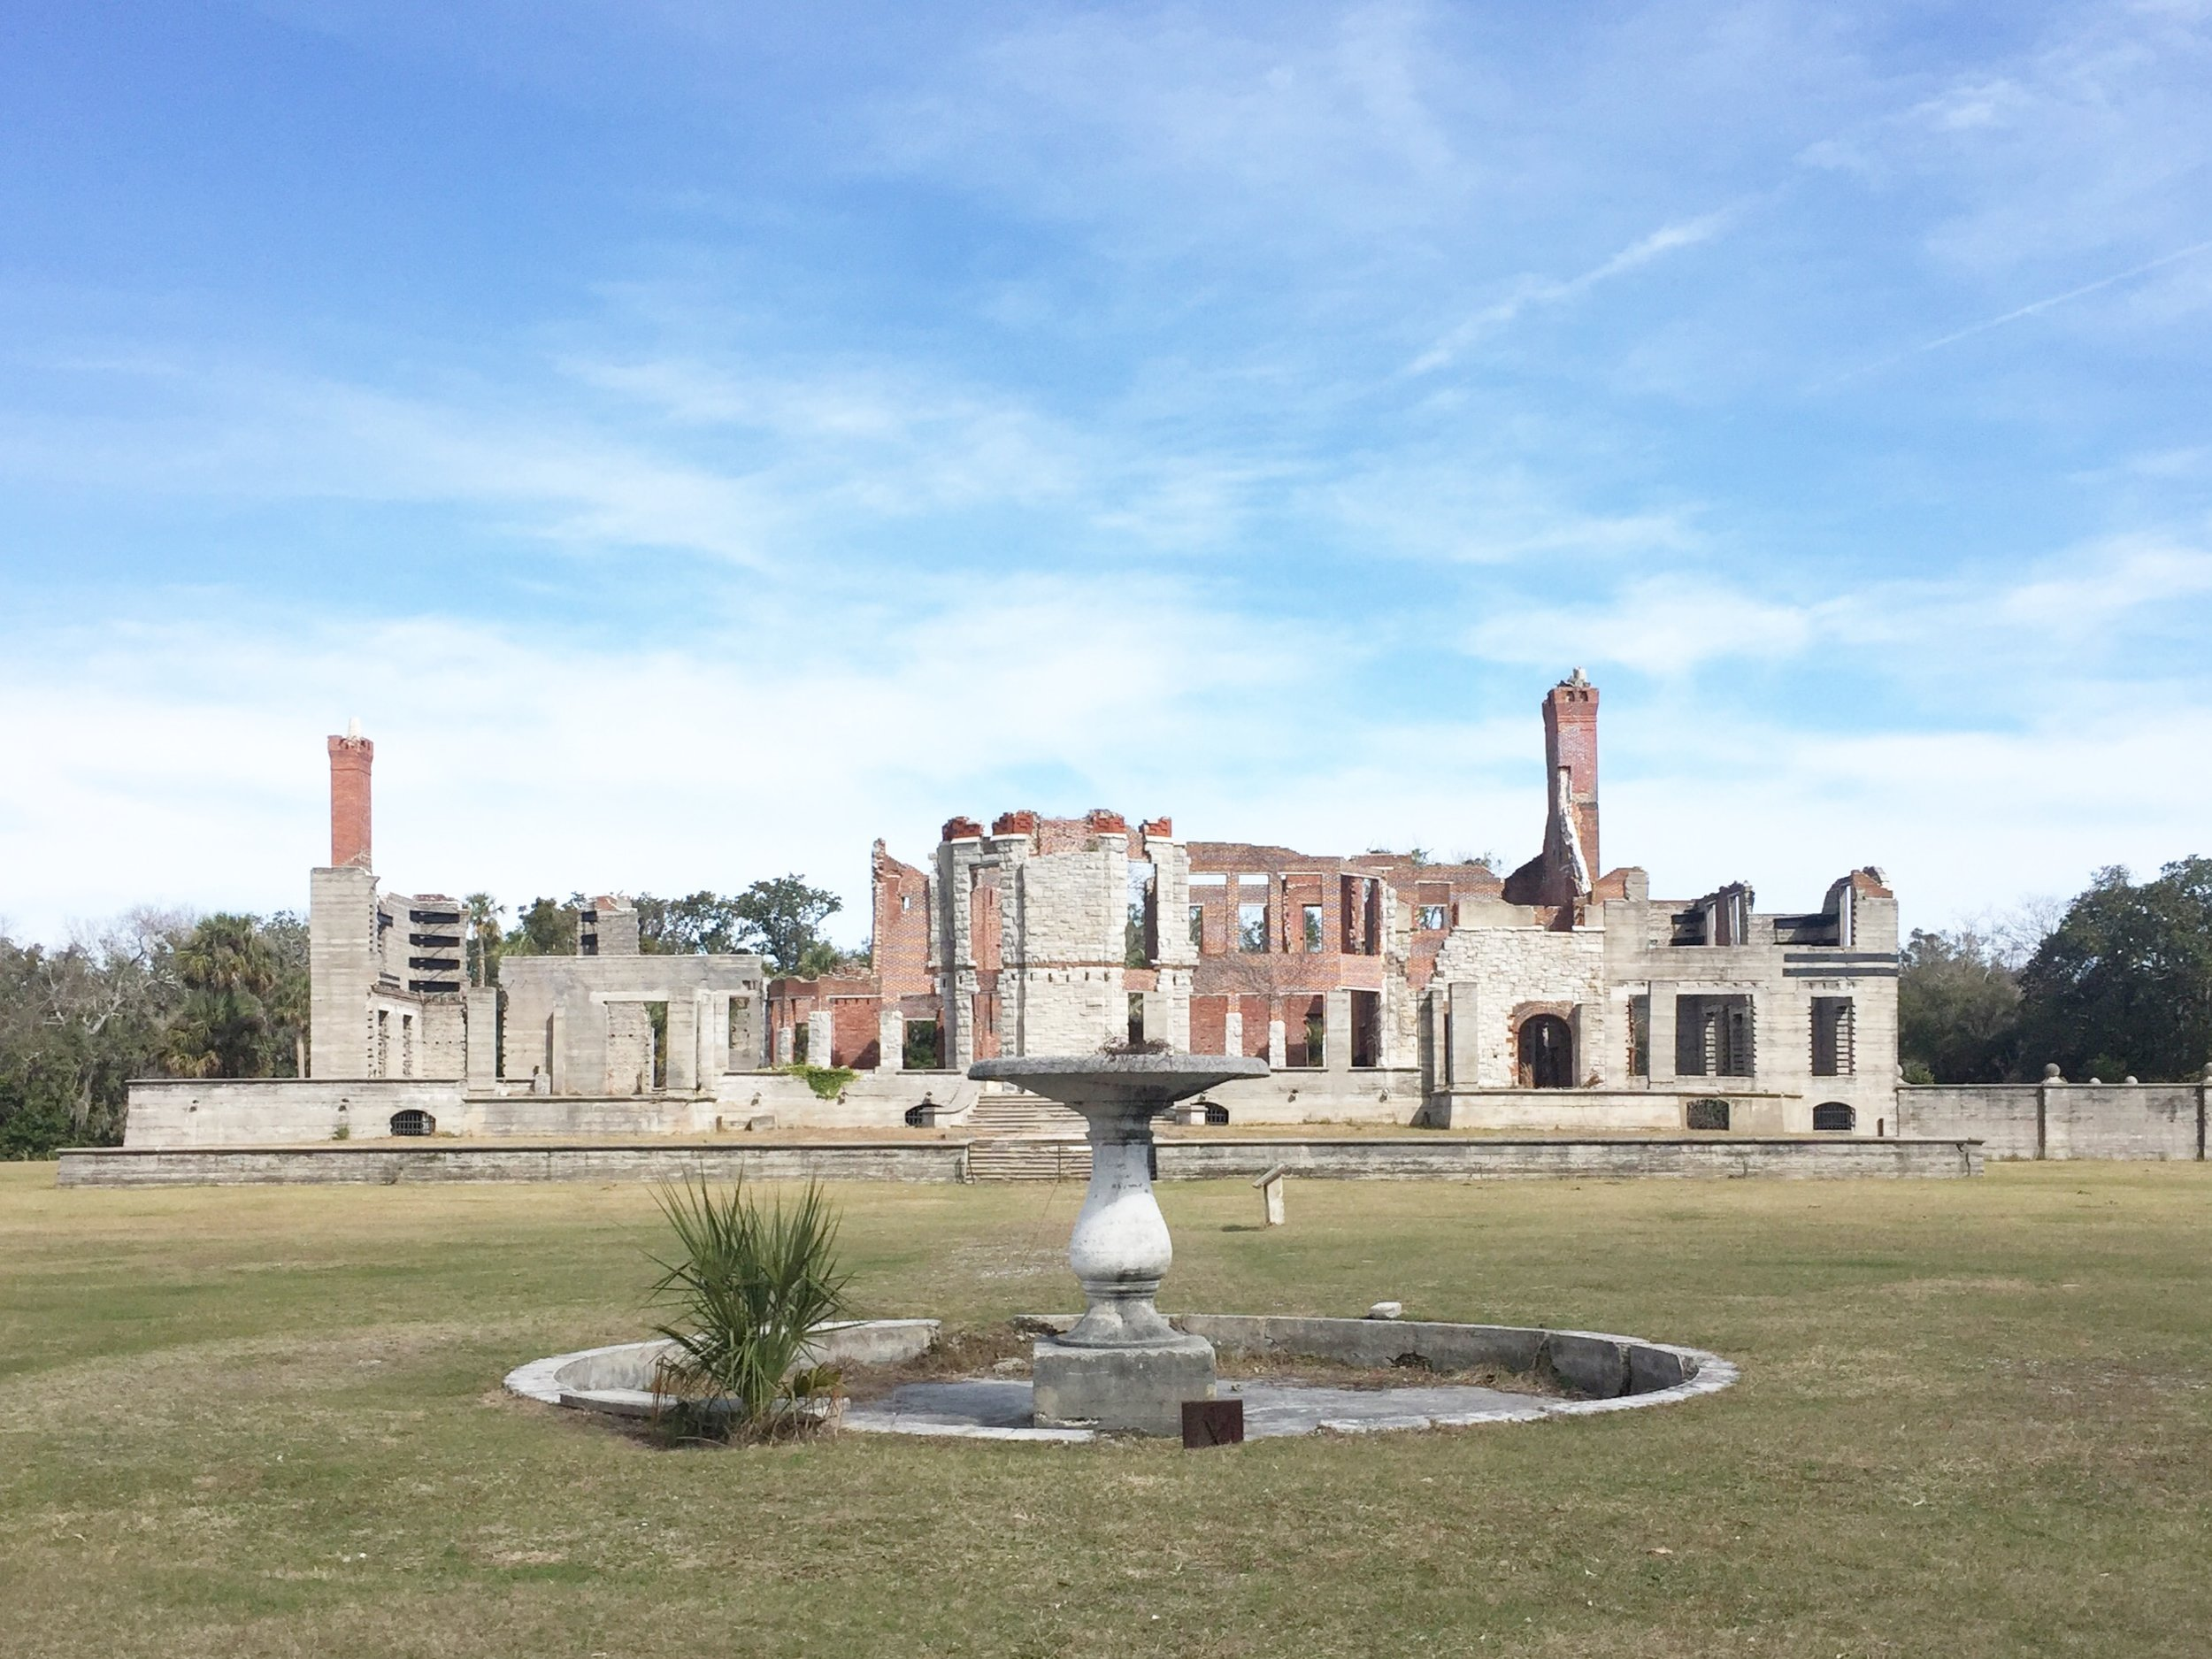 The Dungeness Ruins are a short 3-mile bike ride from the inn.